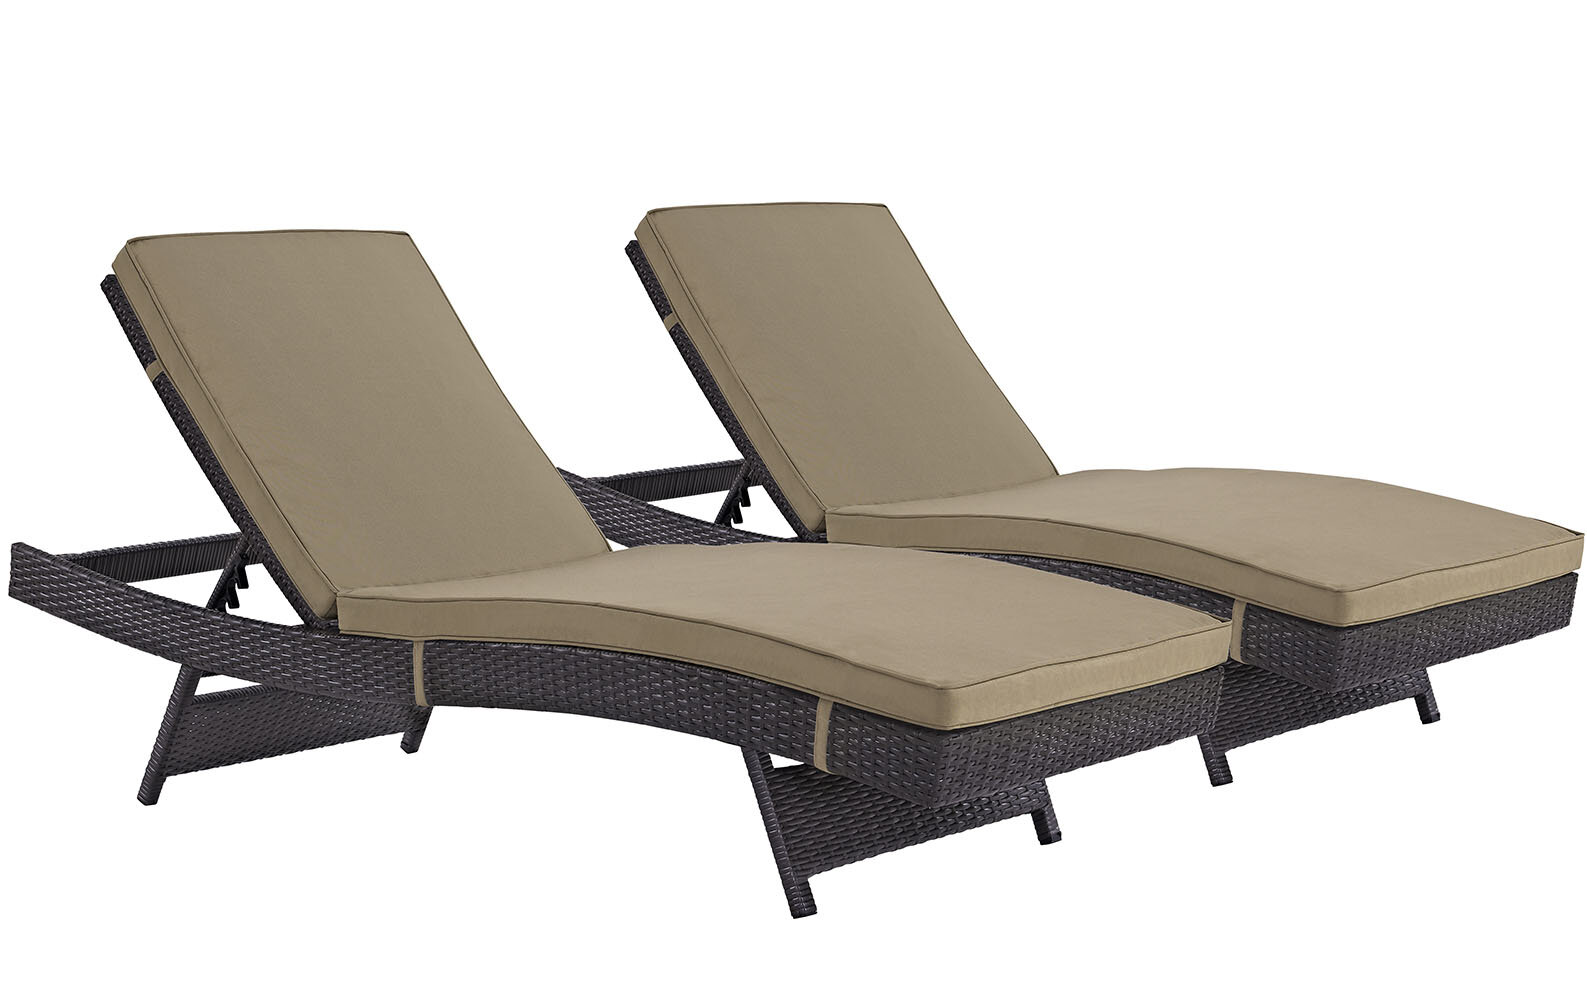 sol 72 outdoor brentwood sun lounger set with cushions w